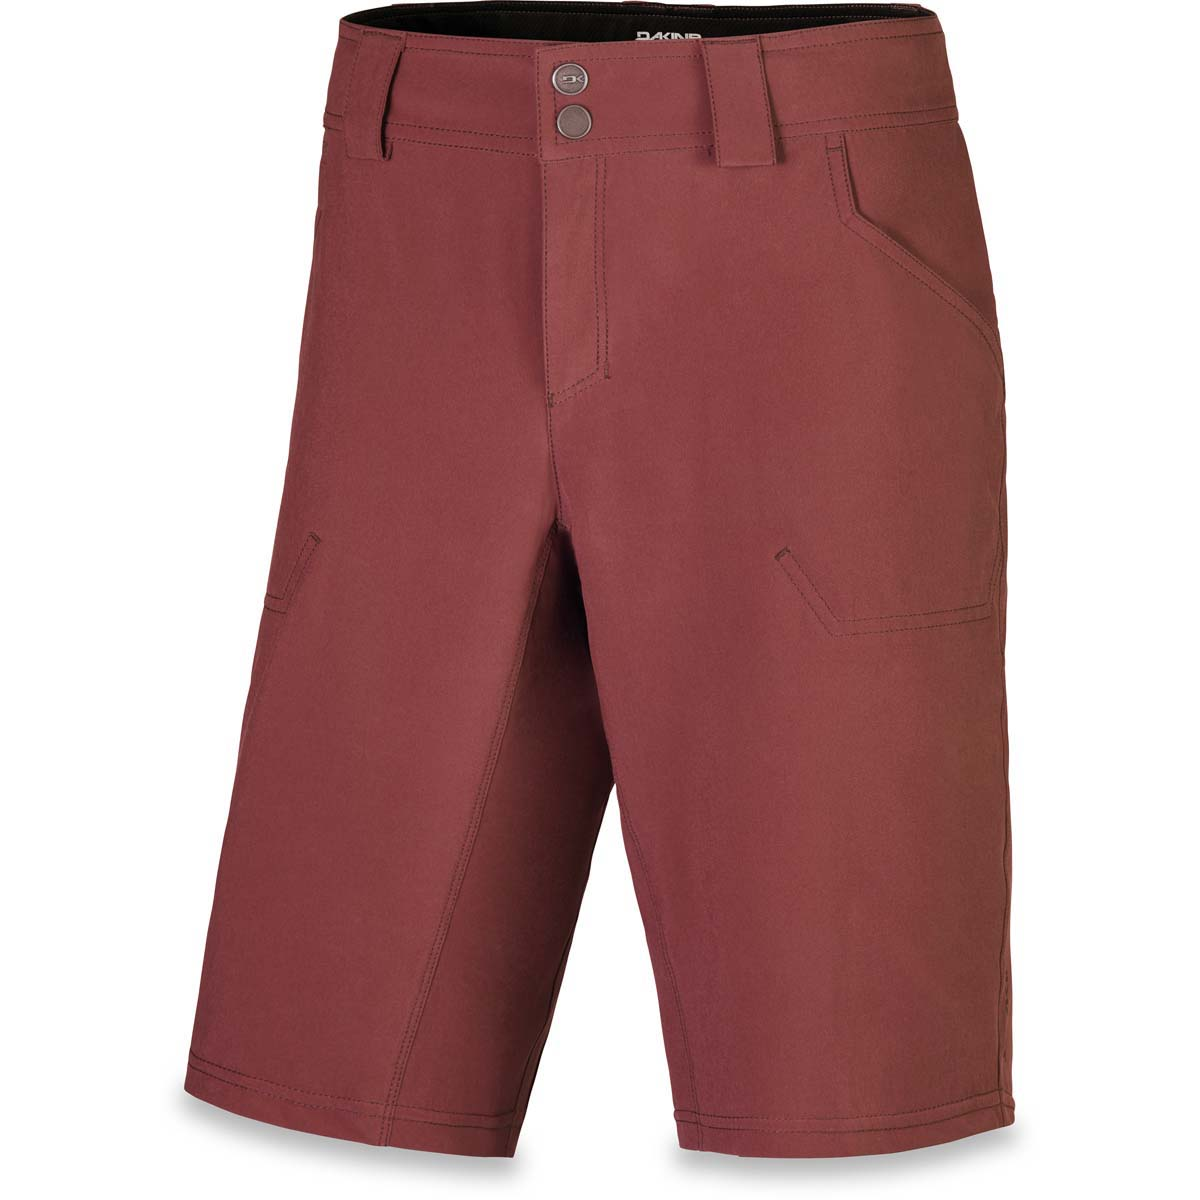 Dakine Cadence Short With Liner Short Bike Short Burnt Rose